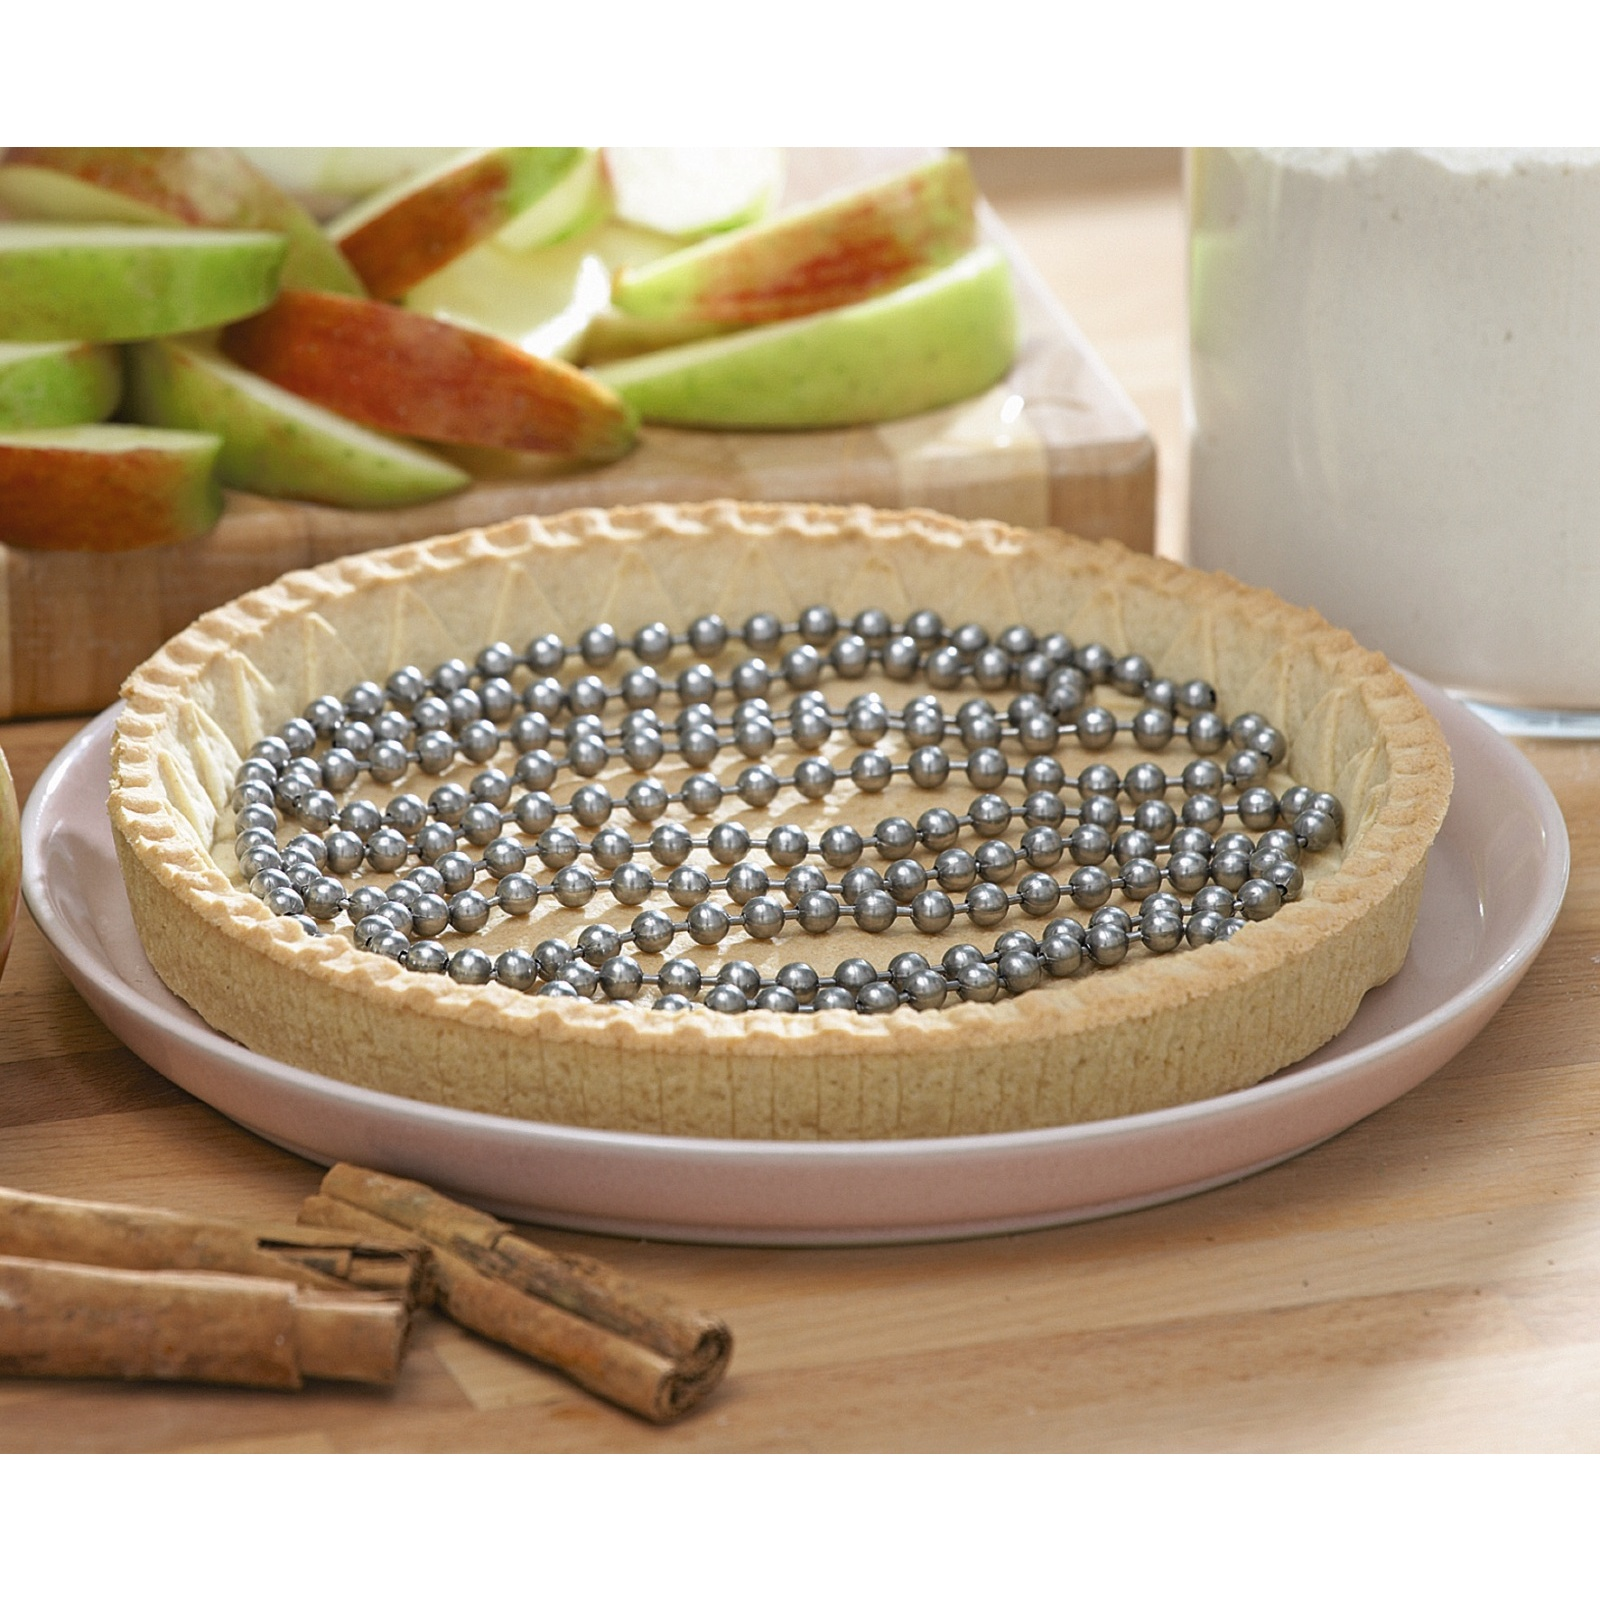 Blind Baking Pie Weight Beads Stainless Steel Reusable